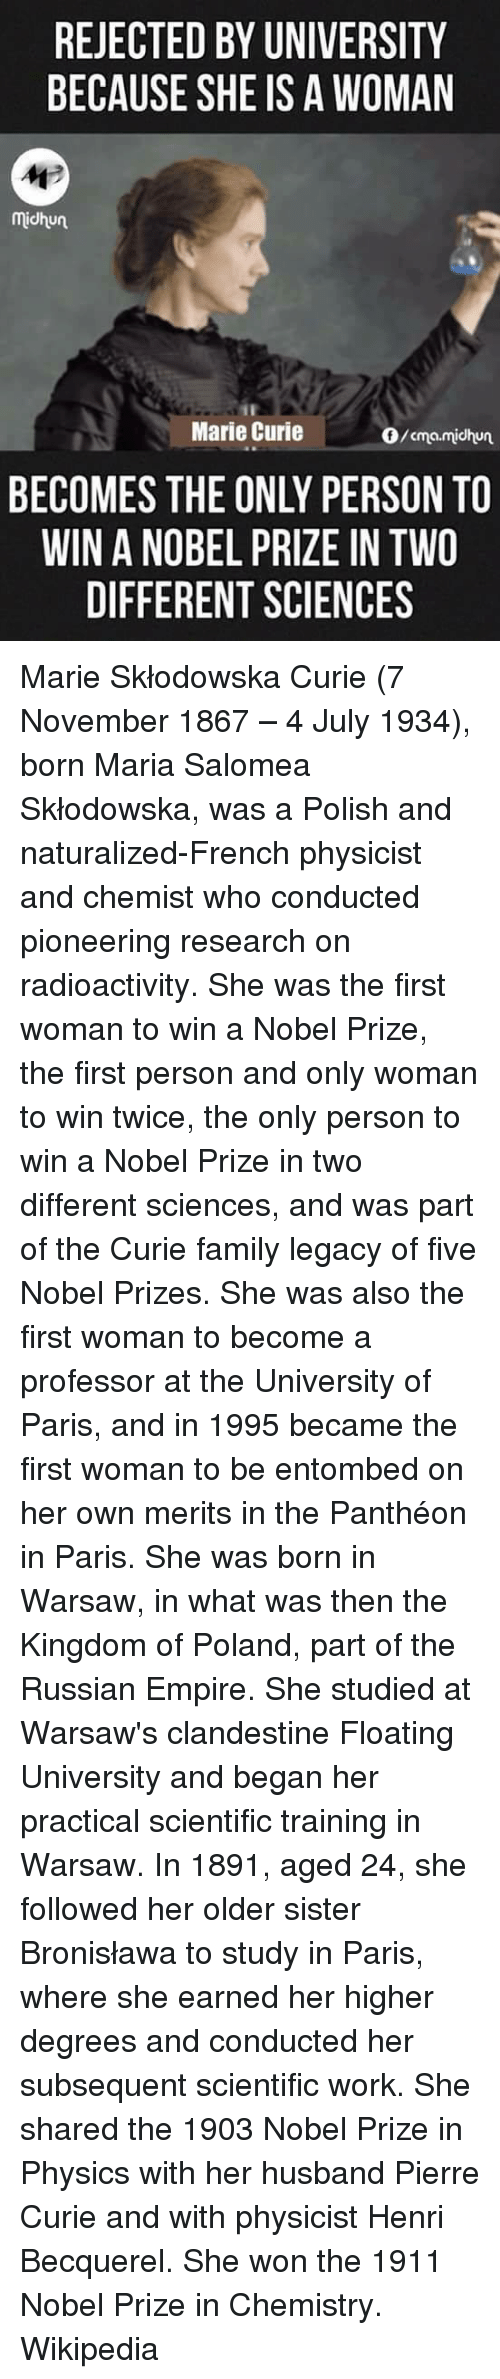 Empire, Family, and Memes: REJECTED BY UNIVERSITY  BECAUSE SHE IS A WOMAN  Midhun  Marie Curie  BECOMES THE ONLY PERSON TO  WIN A NOBEL PRIZE IN TWO  DIFFERENT SCIENCES  O/cma.midhun Marie Skłodowska Curie (7 November 1867 – 4 July 1934), born Maria Salomea Skłodowska, was a Polish and naturalized-French physicist and chemist who conducted pioneering research on radioactivity. She was the first woman to win a Nobel Prize, the first person and only woman to win twice, the only person to win a Nobel Prize in two different sciences, and was part of the Curie family legacy of five Nobel Prizes. She was also the first woman to become a professor at the University of Paris, and in 1995 became the first woman to be entombed on her own merits in the Panthéon in Paris. She was born in Warsaw, in what was then the Kingdom of Poland, part of the Russian Empire. She studied at Warsaw's clandestine Floating University and began her practical scientific training in Warsaw. In 1891, aged 24, she followed her older sister Bronisława to study in Paris, where she earned her higher degrees and conducted her subsequent scientific work. She shared the 1903 Nobel Prize in Physics with her husband Pierre Curie and with physicist Henri Becquerel. She won the 1911 Nobel Prize in Chemistry. Wikipedia